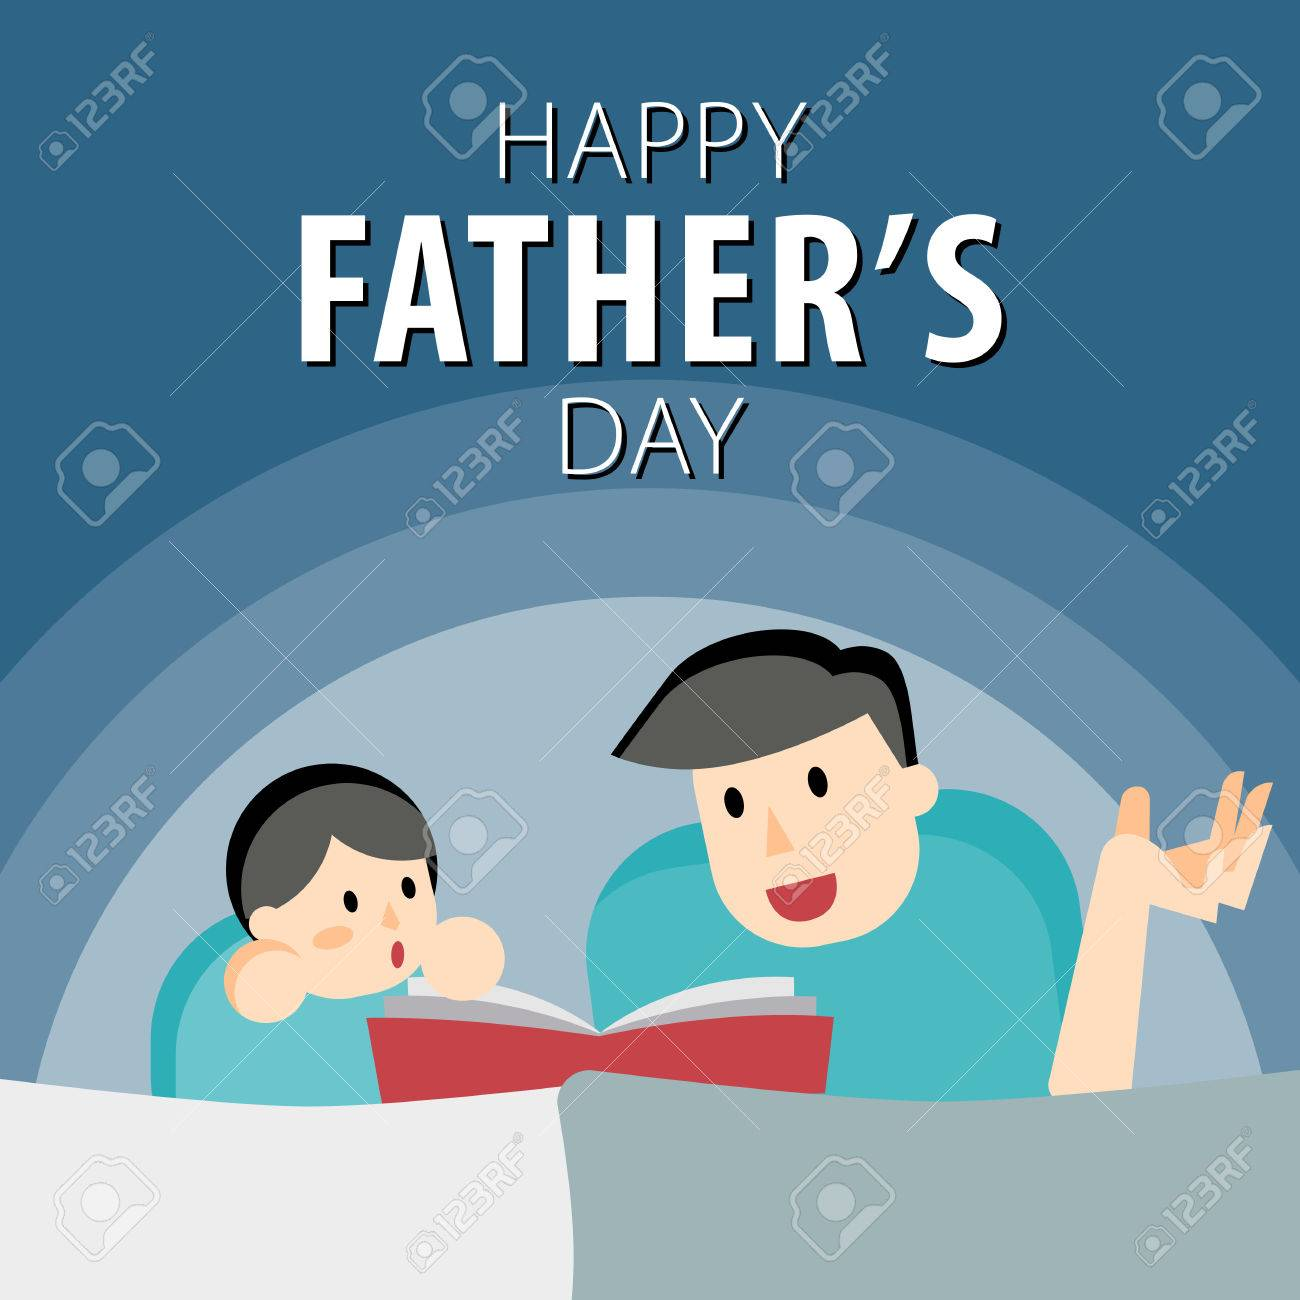 Happy fathers day fathers day greeting card dad reading with happy fathers day fathers day greeting card dad reading with his child all m4hsunfo Image collections